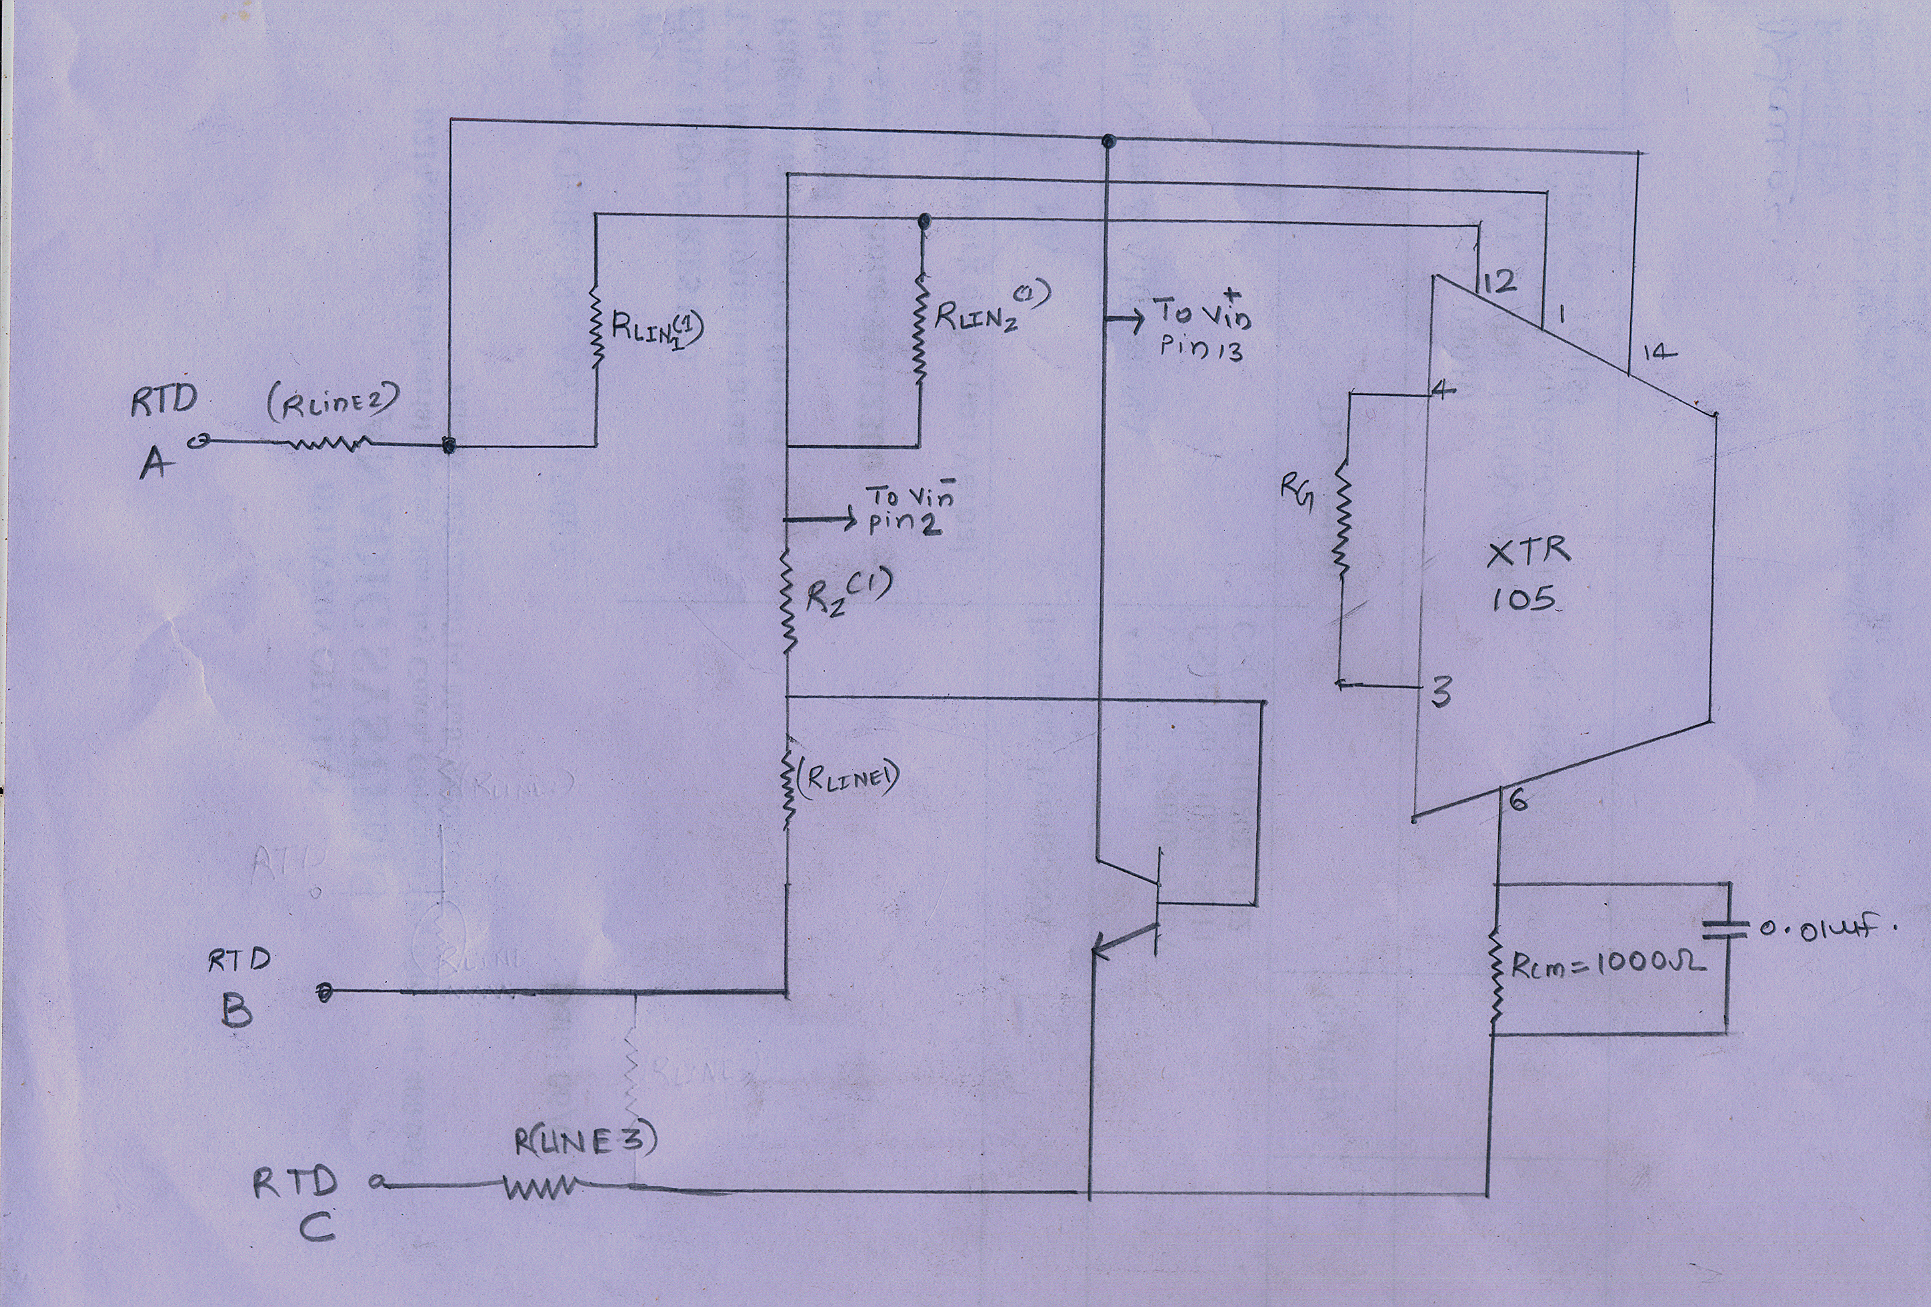 Resolved Pt100 3 Wire Rtd Using Xtr105 Amplifiers Forum Wiring Diagram I Am Attaching The Schematic Of My Ckt Checked For Offset Between Two Inputs But There No Observed